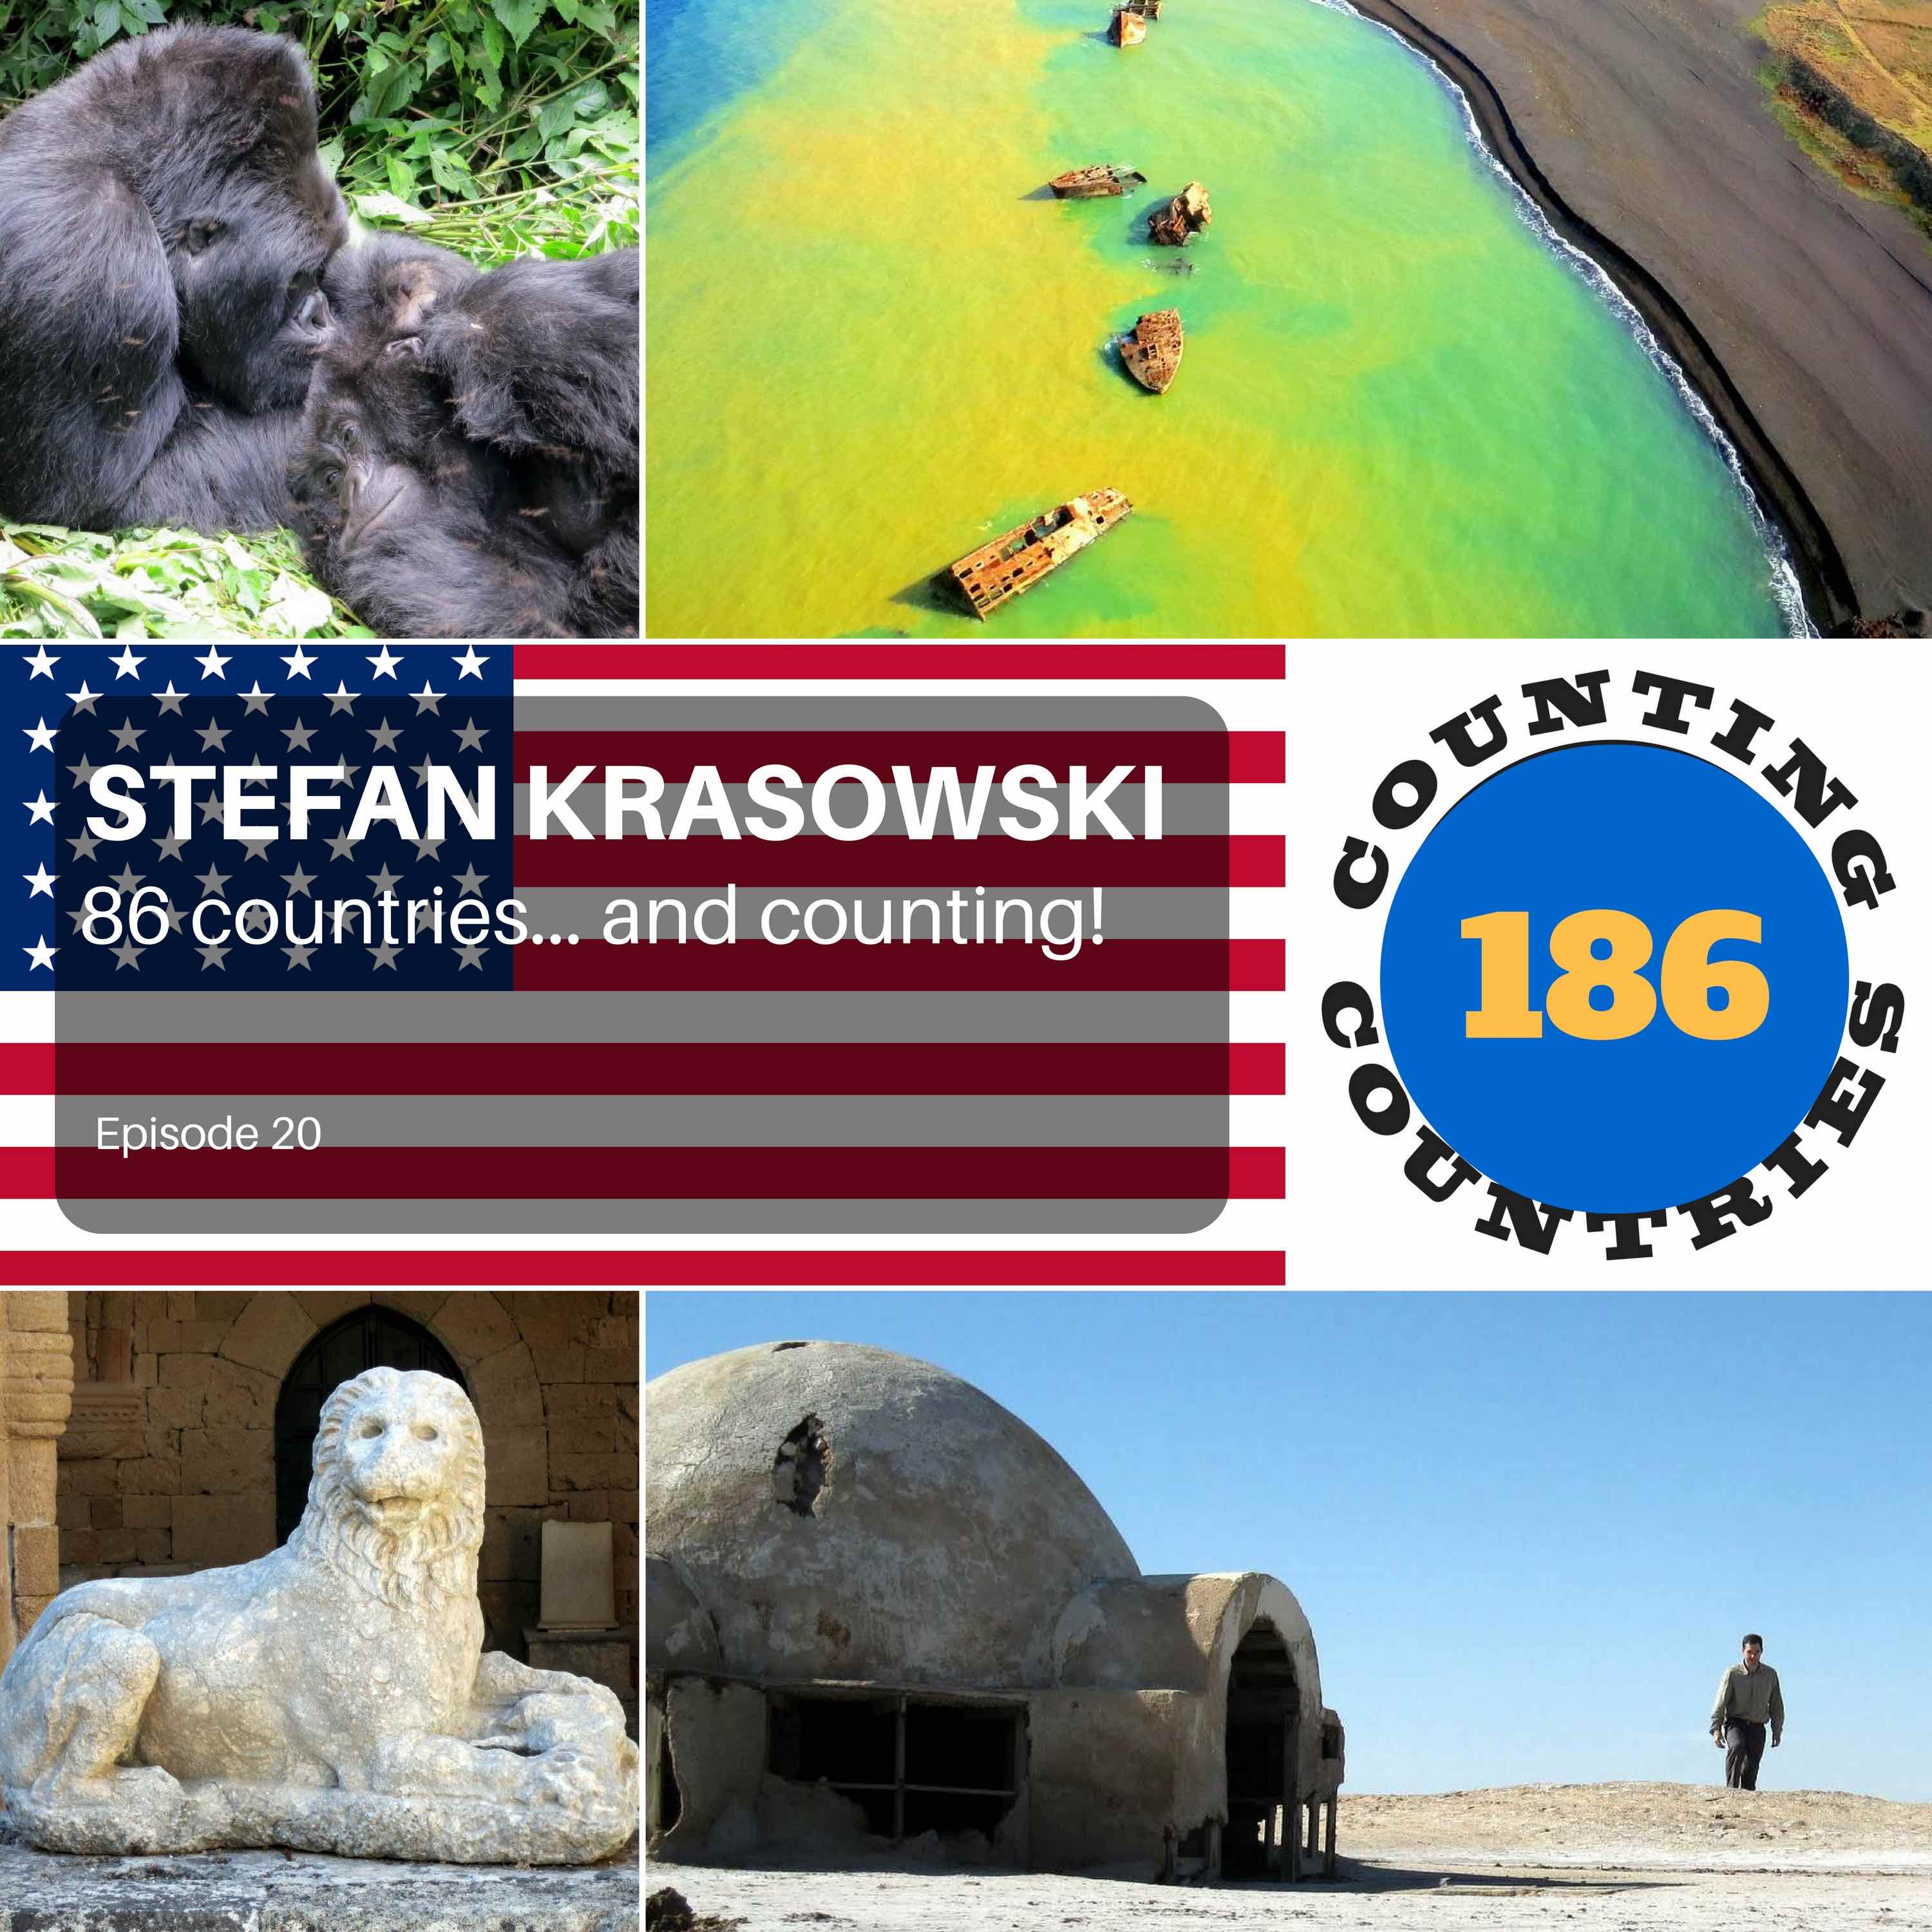 Stefan Krasowski - 186 countries... and counting!